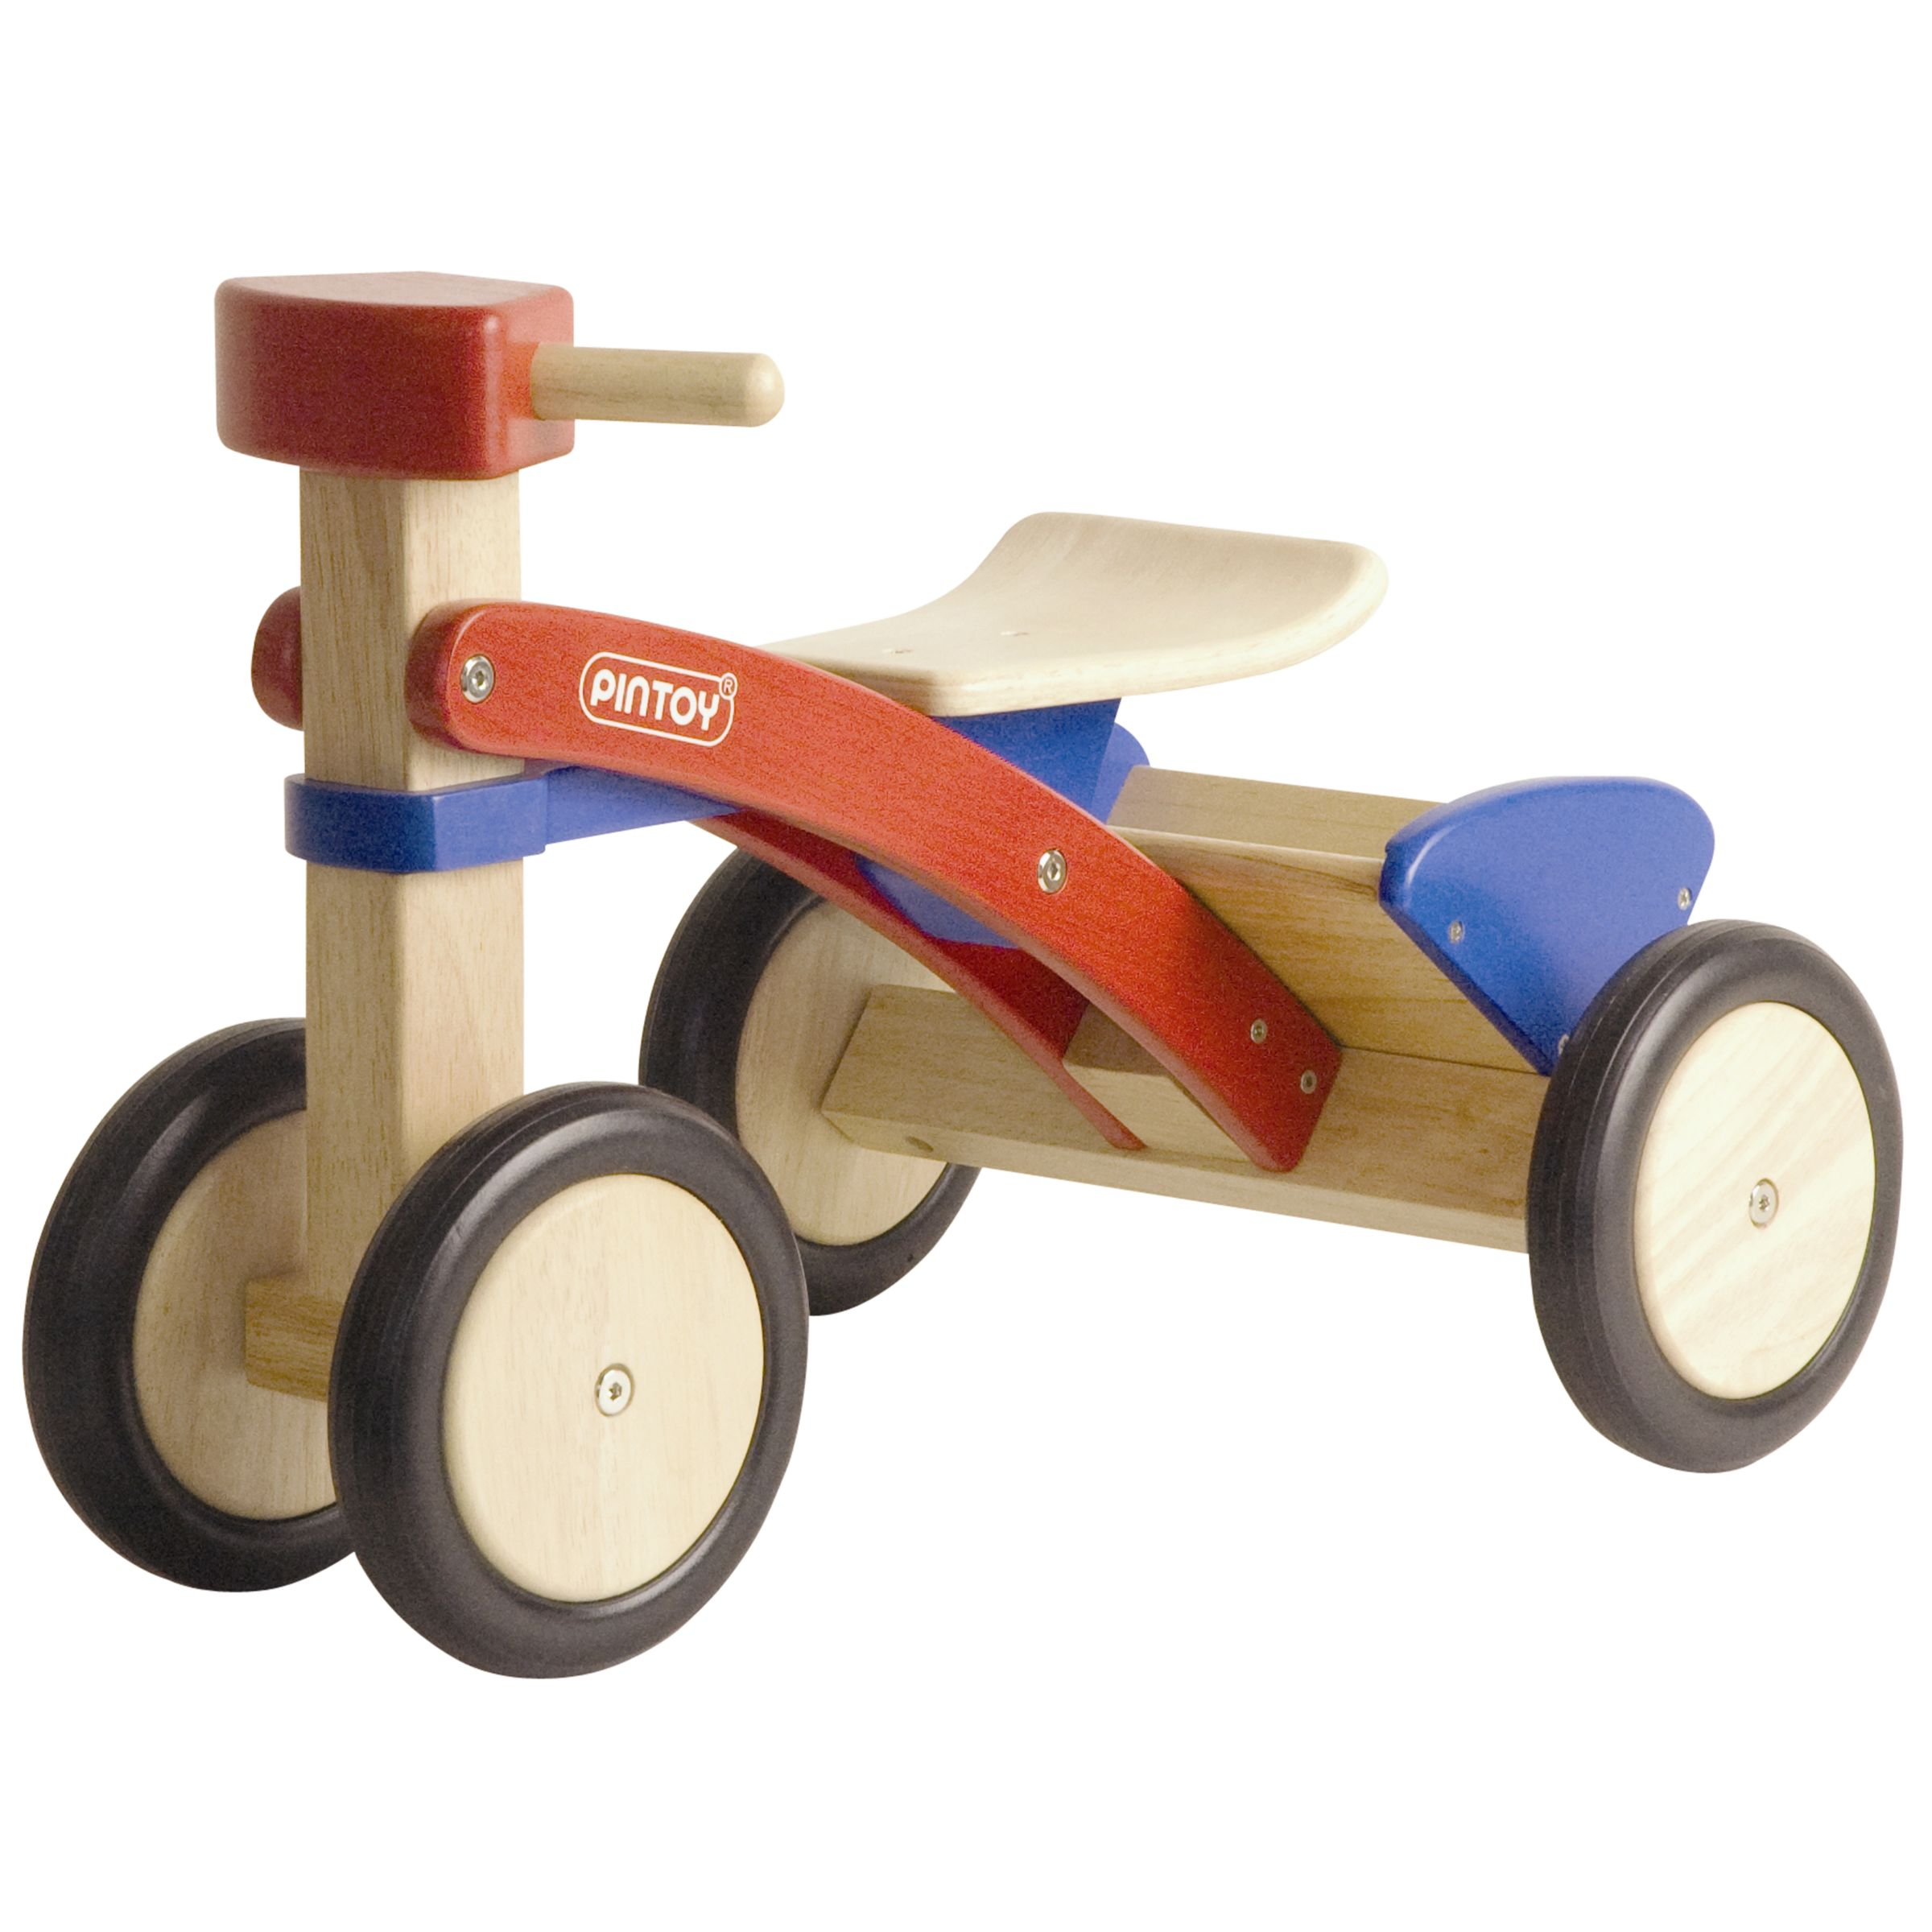 Pin Toys Pick-Up Wooden Tricycle, Red